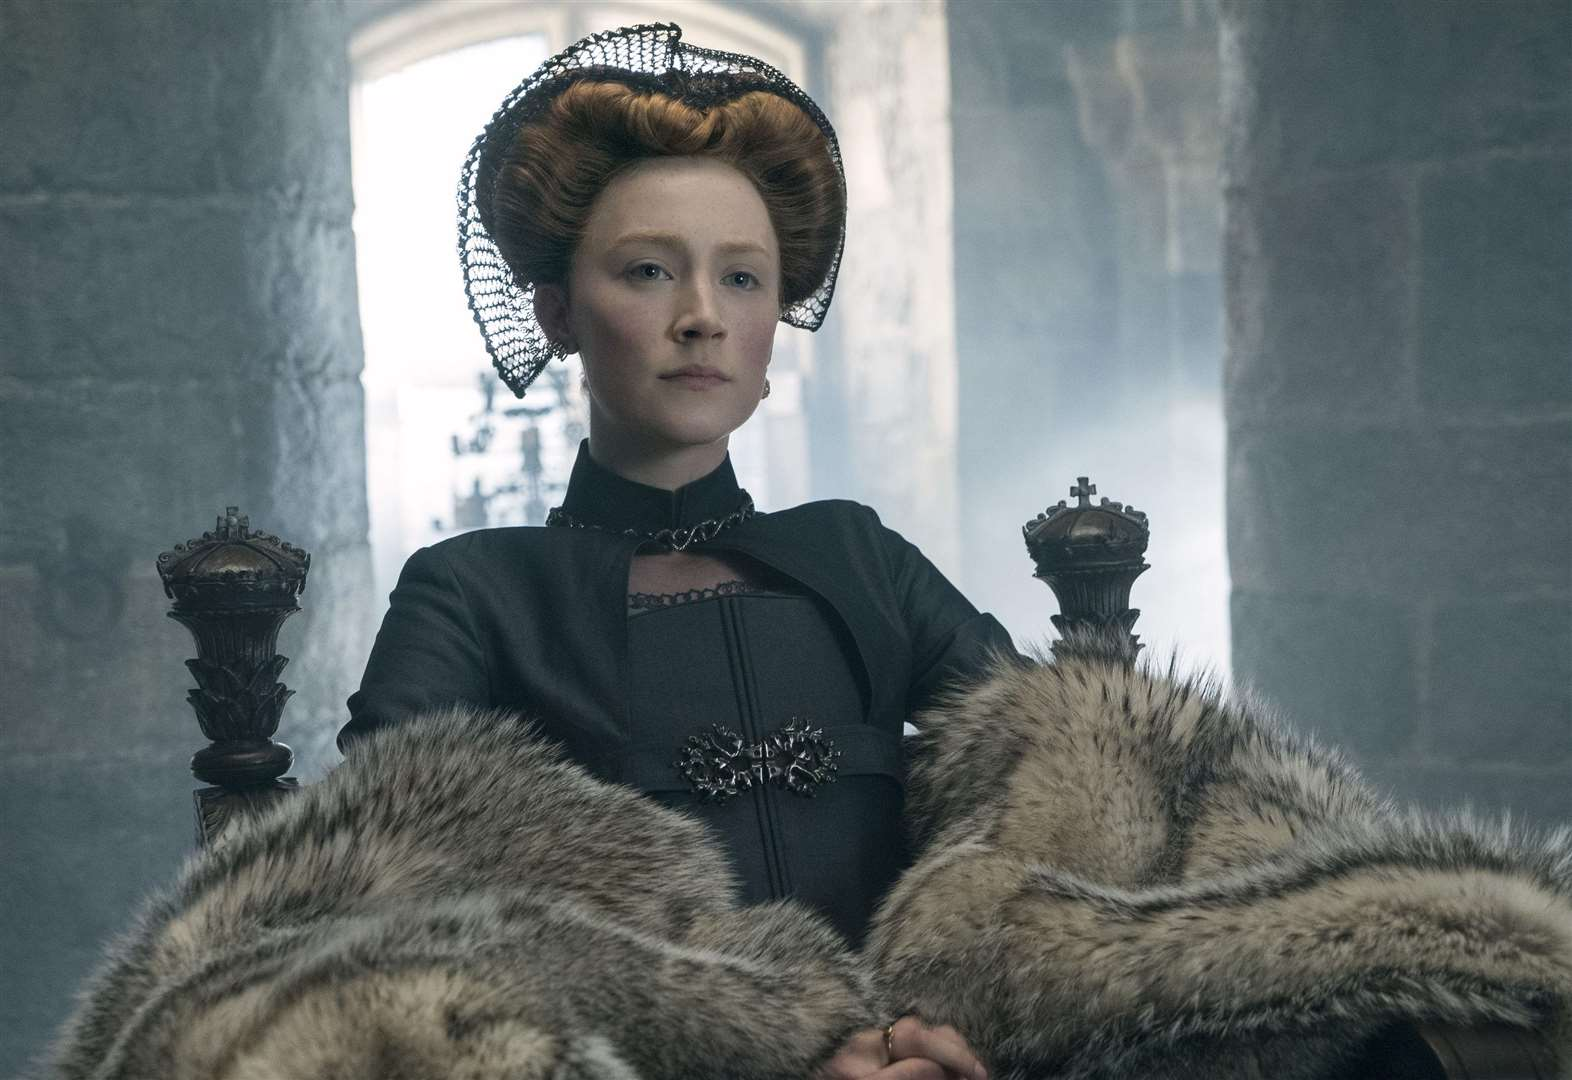 Behind the scenes with Mary Queen of Scots